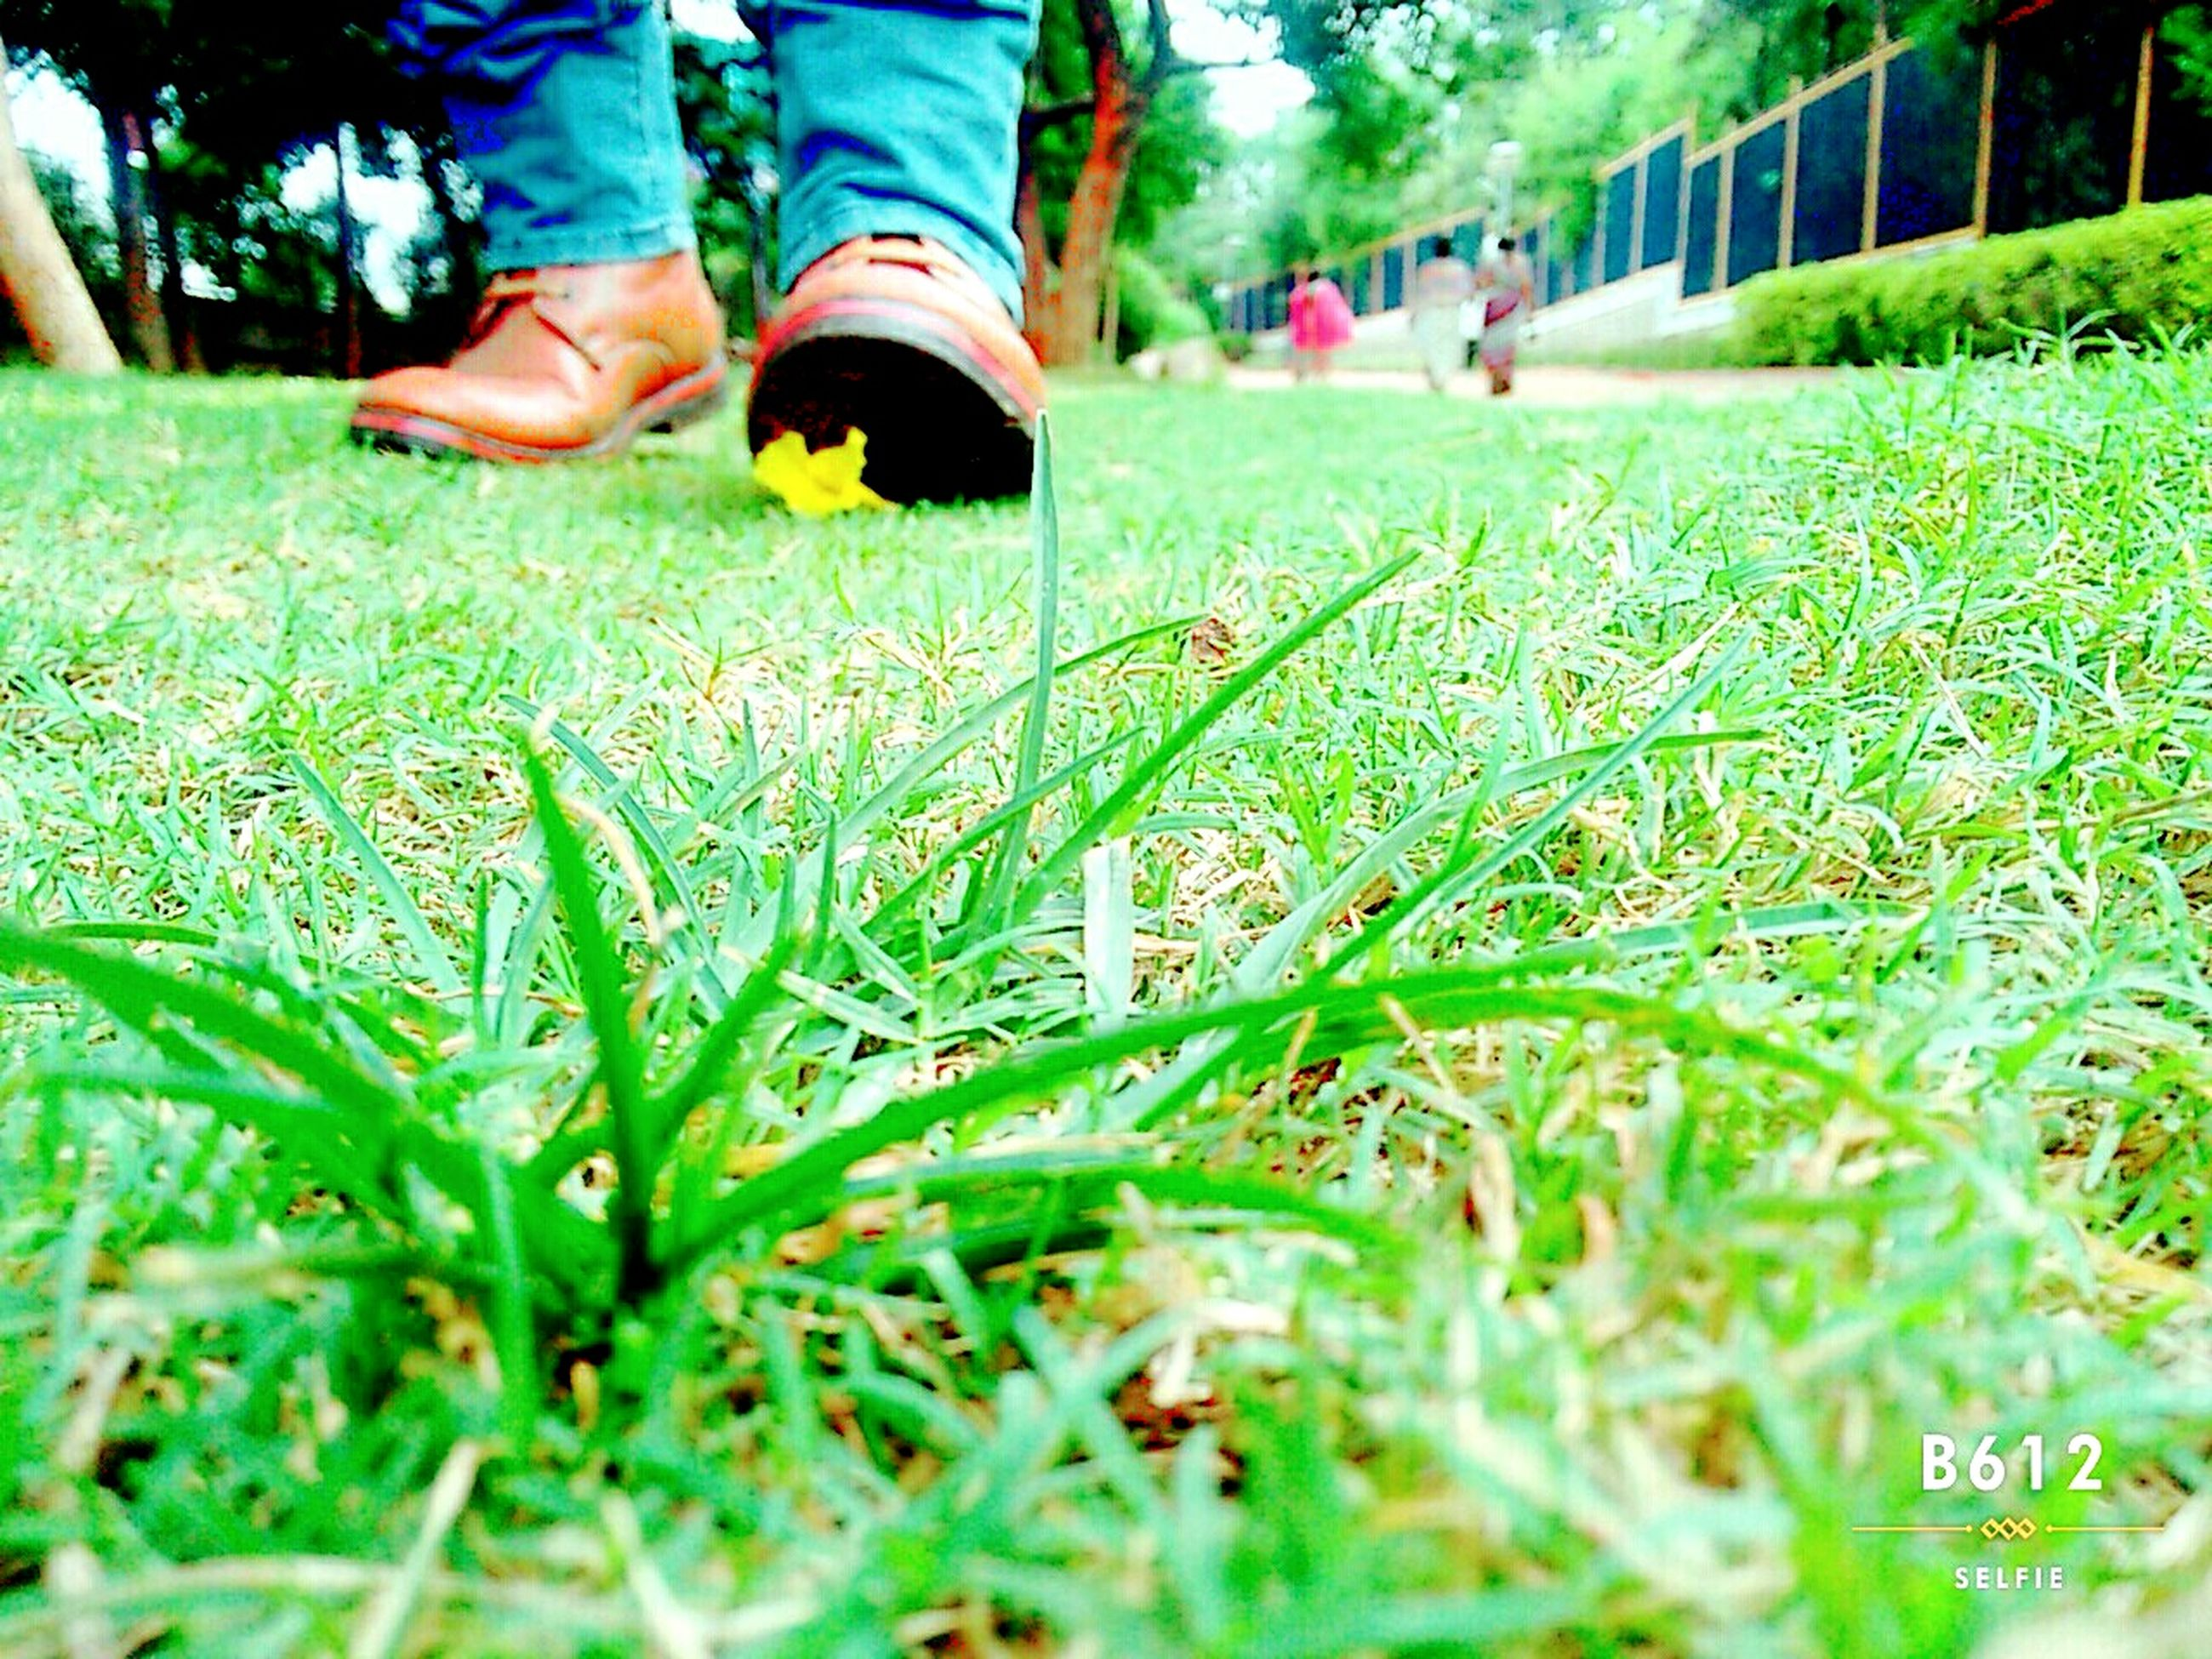 grass, lifestyles, low section, leisure activity, men, field, sport, green color, person, park - man made space, grassy, unrecognizable person, selective focus, playing, focus on foreground